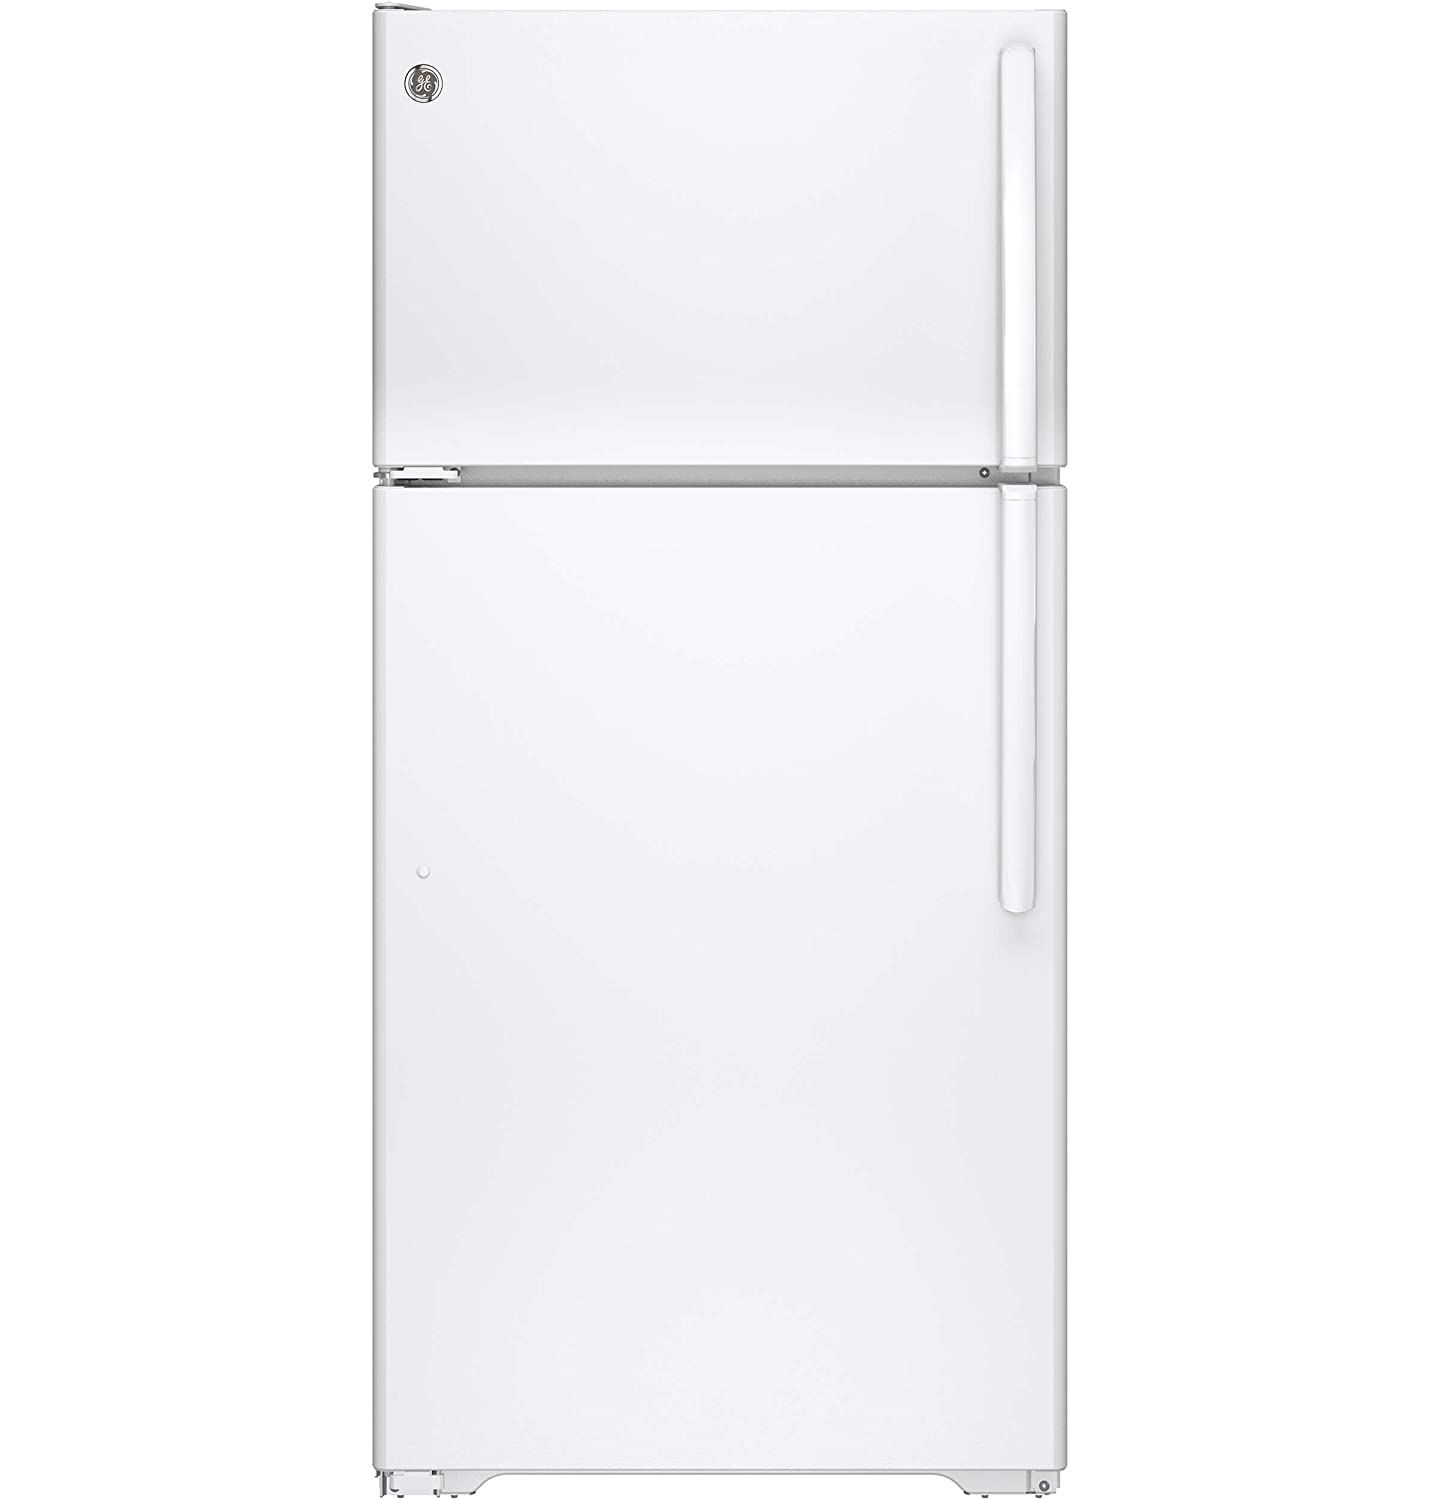 GE GTE15CTHLWW 14.6 Cu. Ft. White Top Freezer Refrigerator - Energy Star - Left Hinge